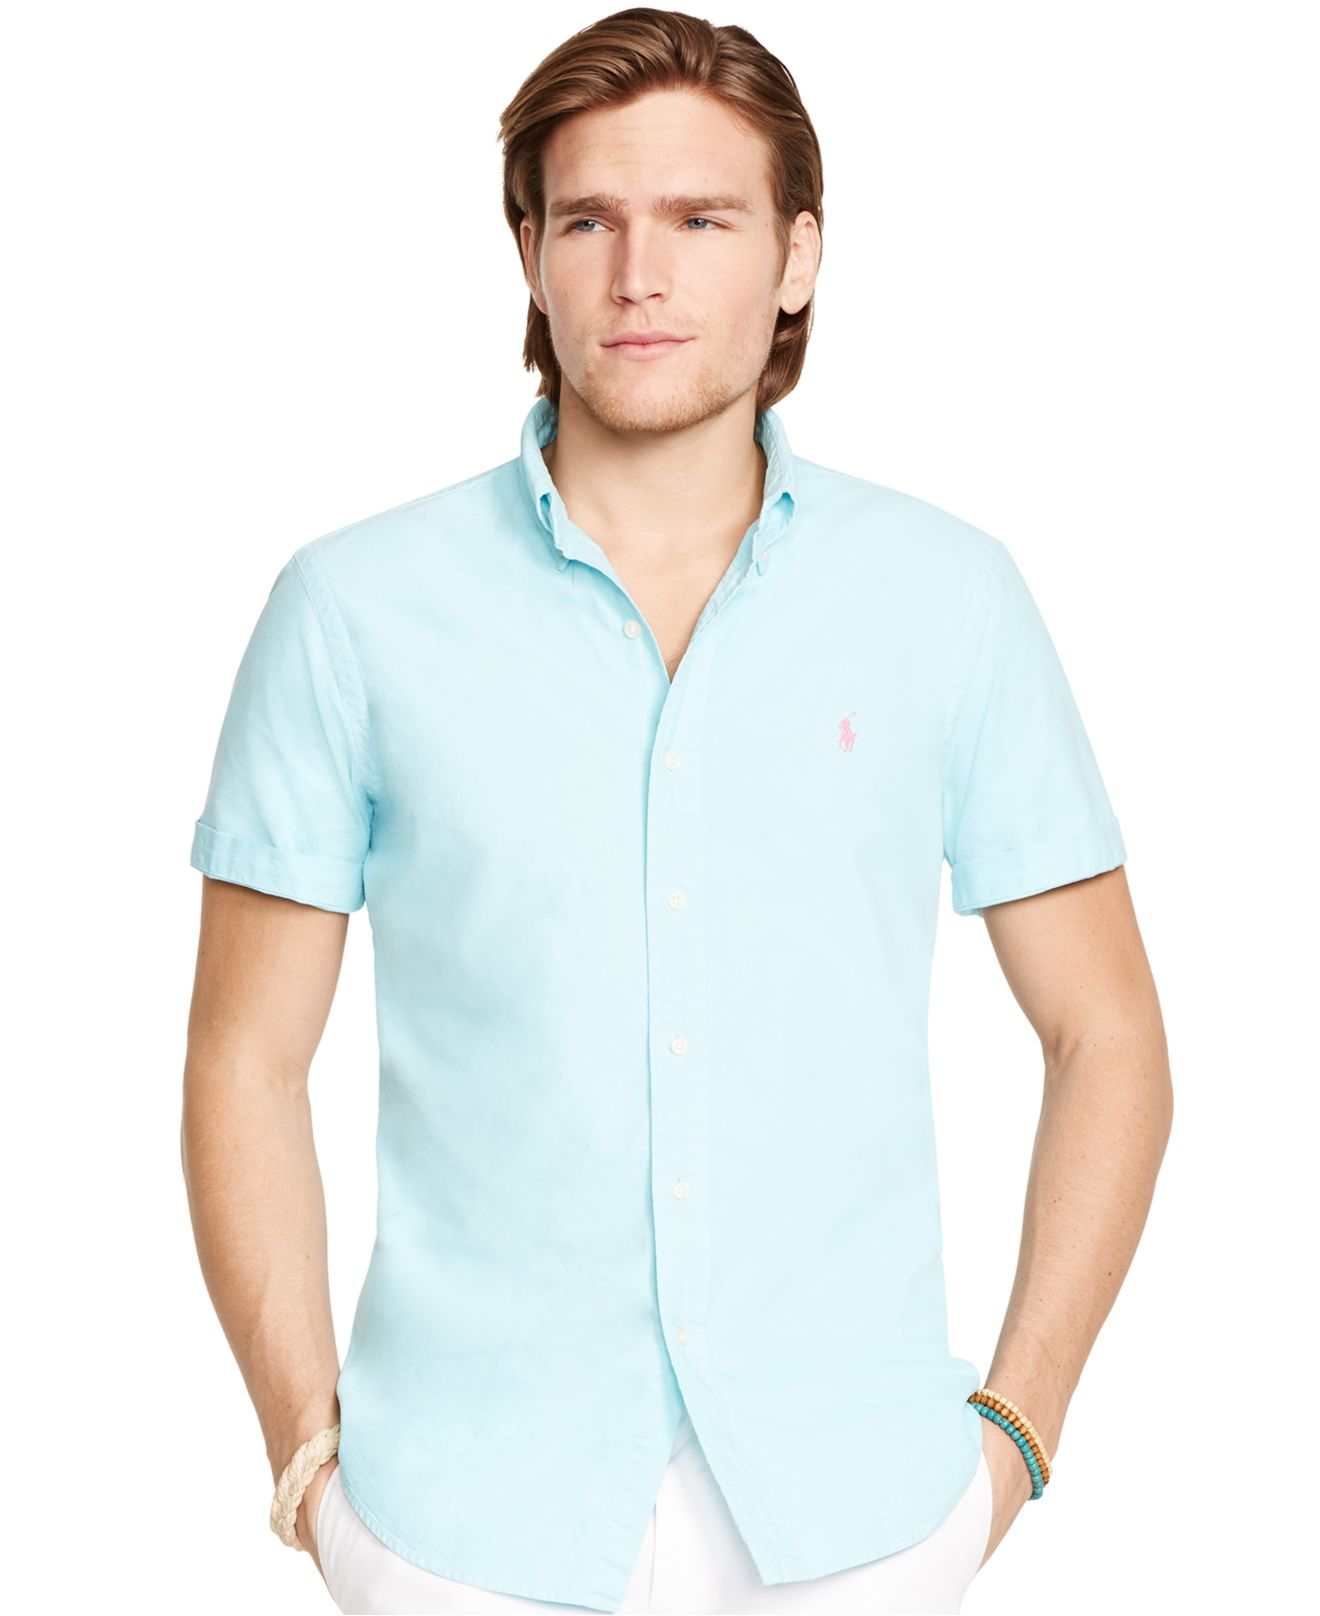 short sleeved logo polo shirt - Blue Polo Ralph Lauren Buy Cheap For Cheap Latest Collections For Sale myq7B6E1o